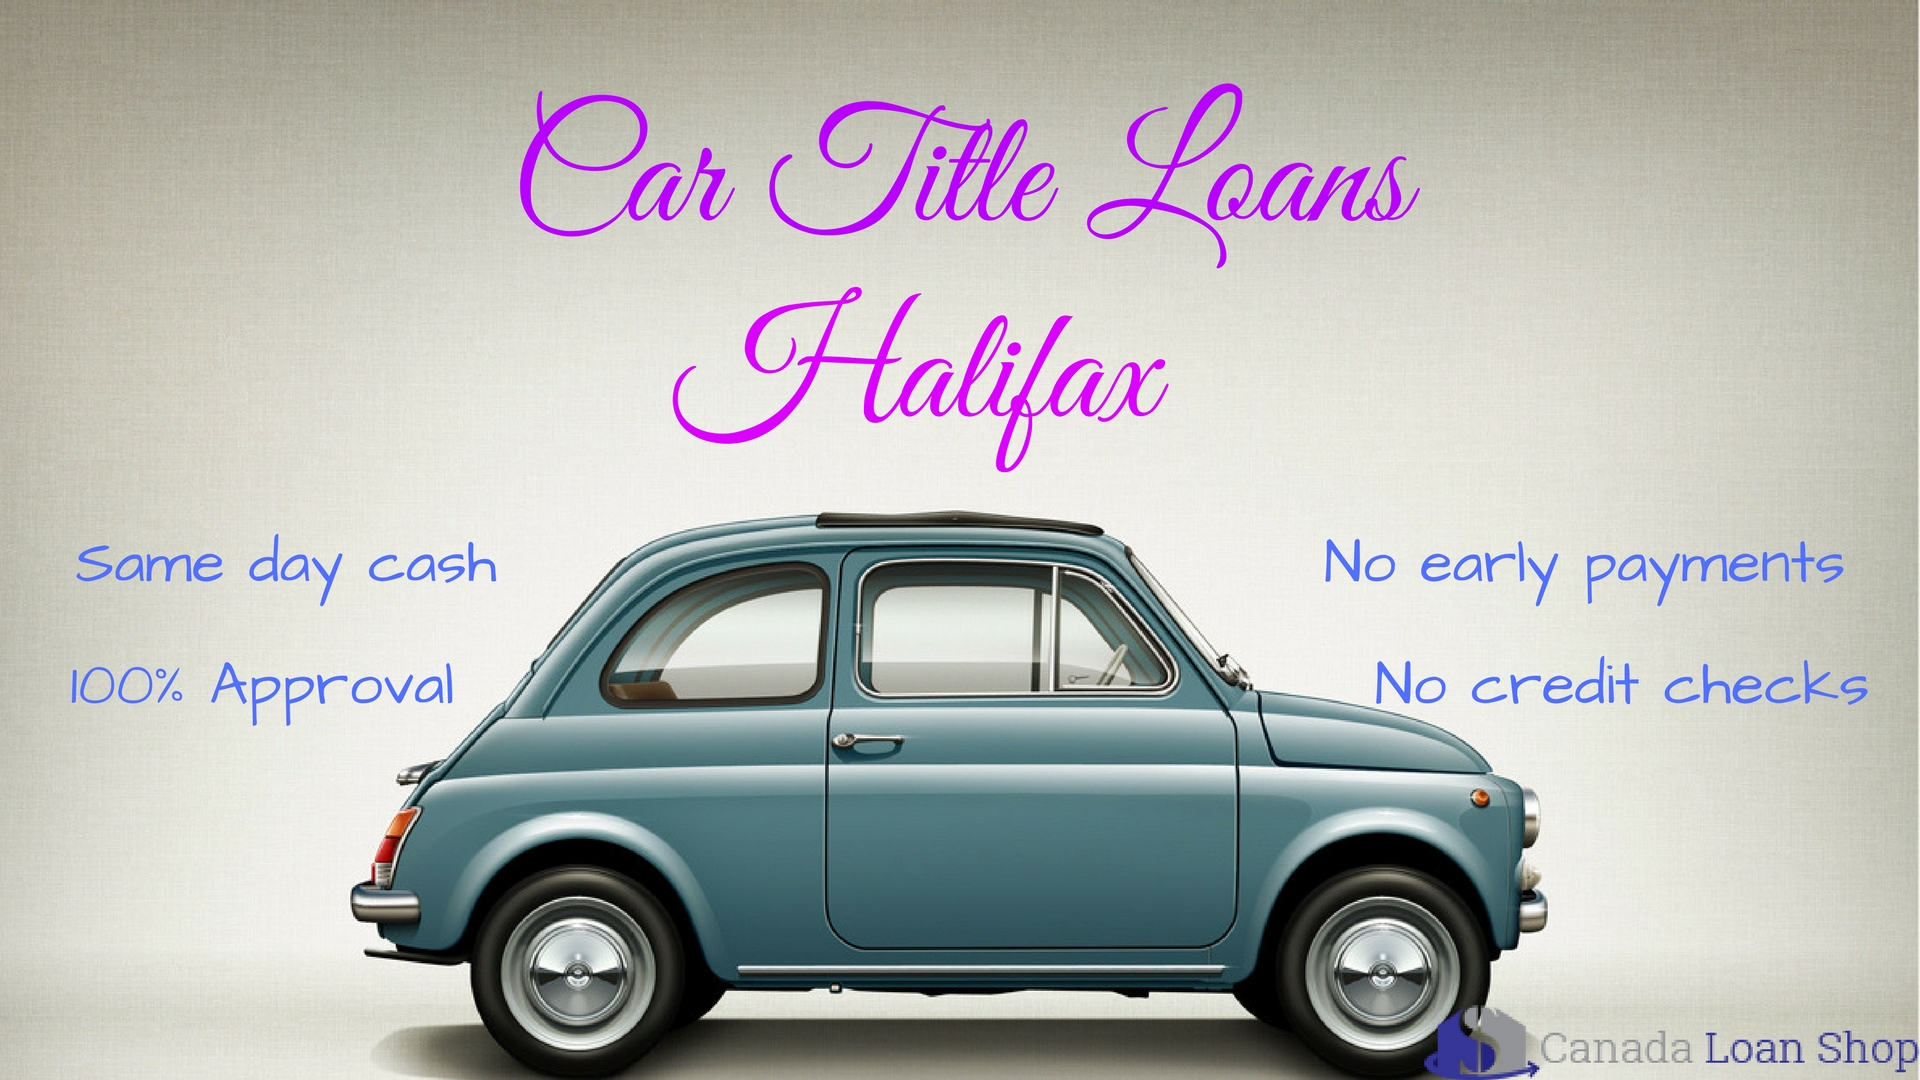 Car Title Loans Halifax